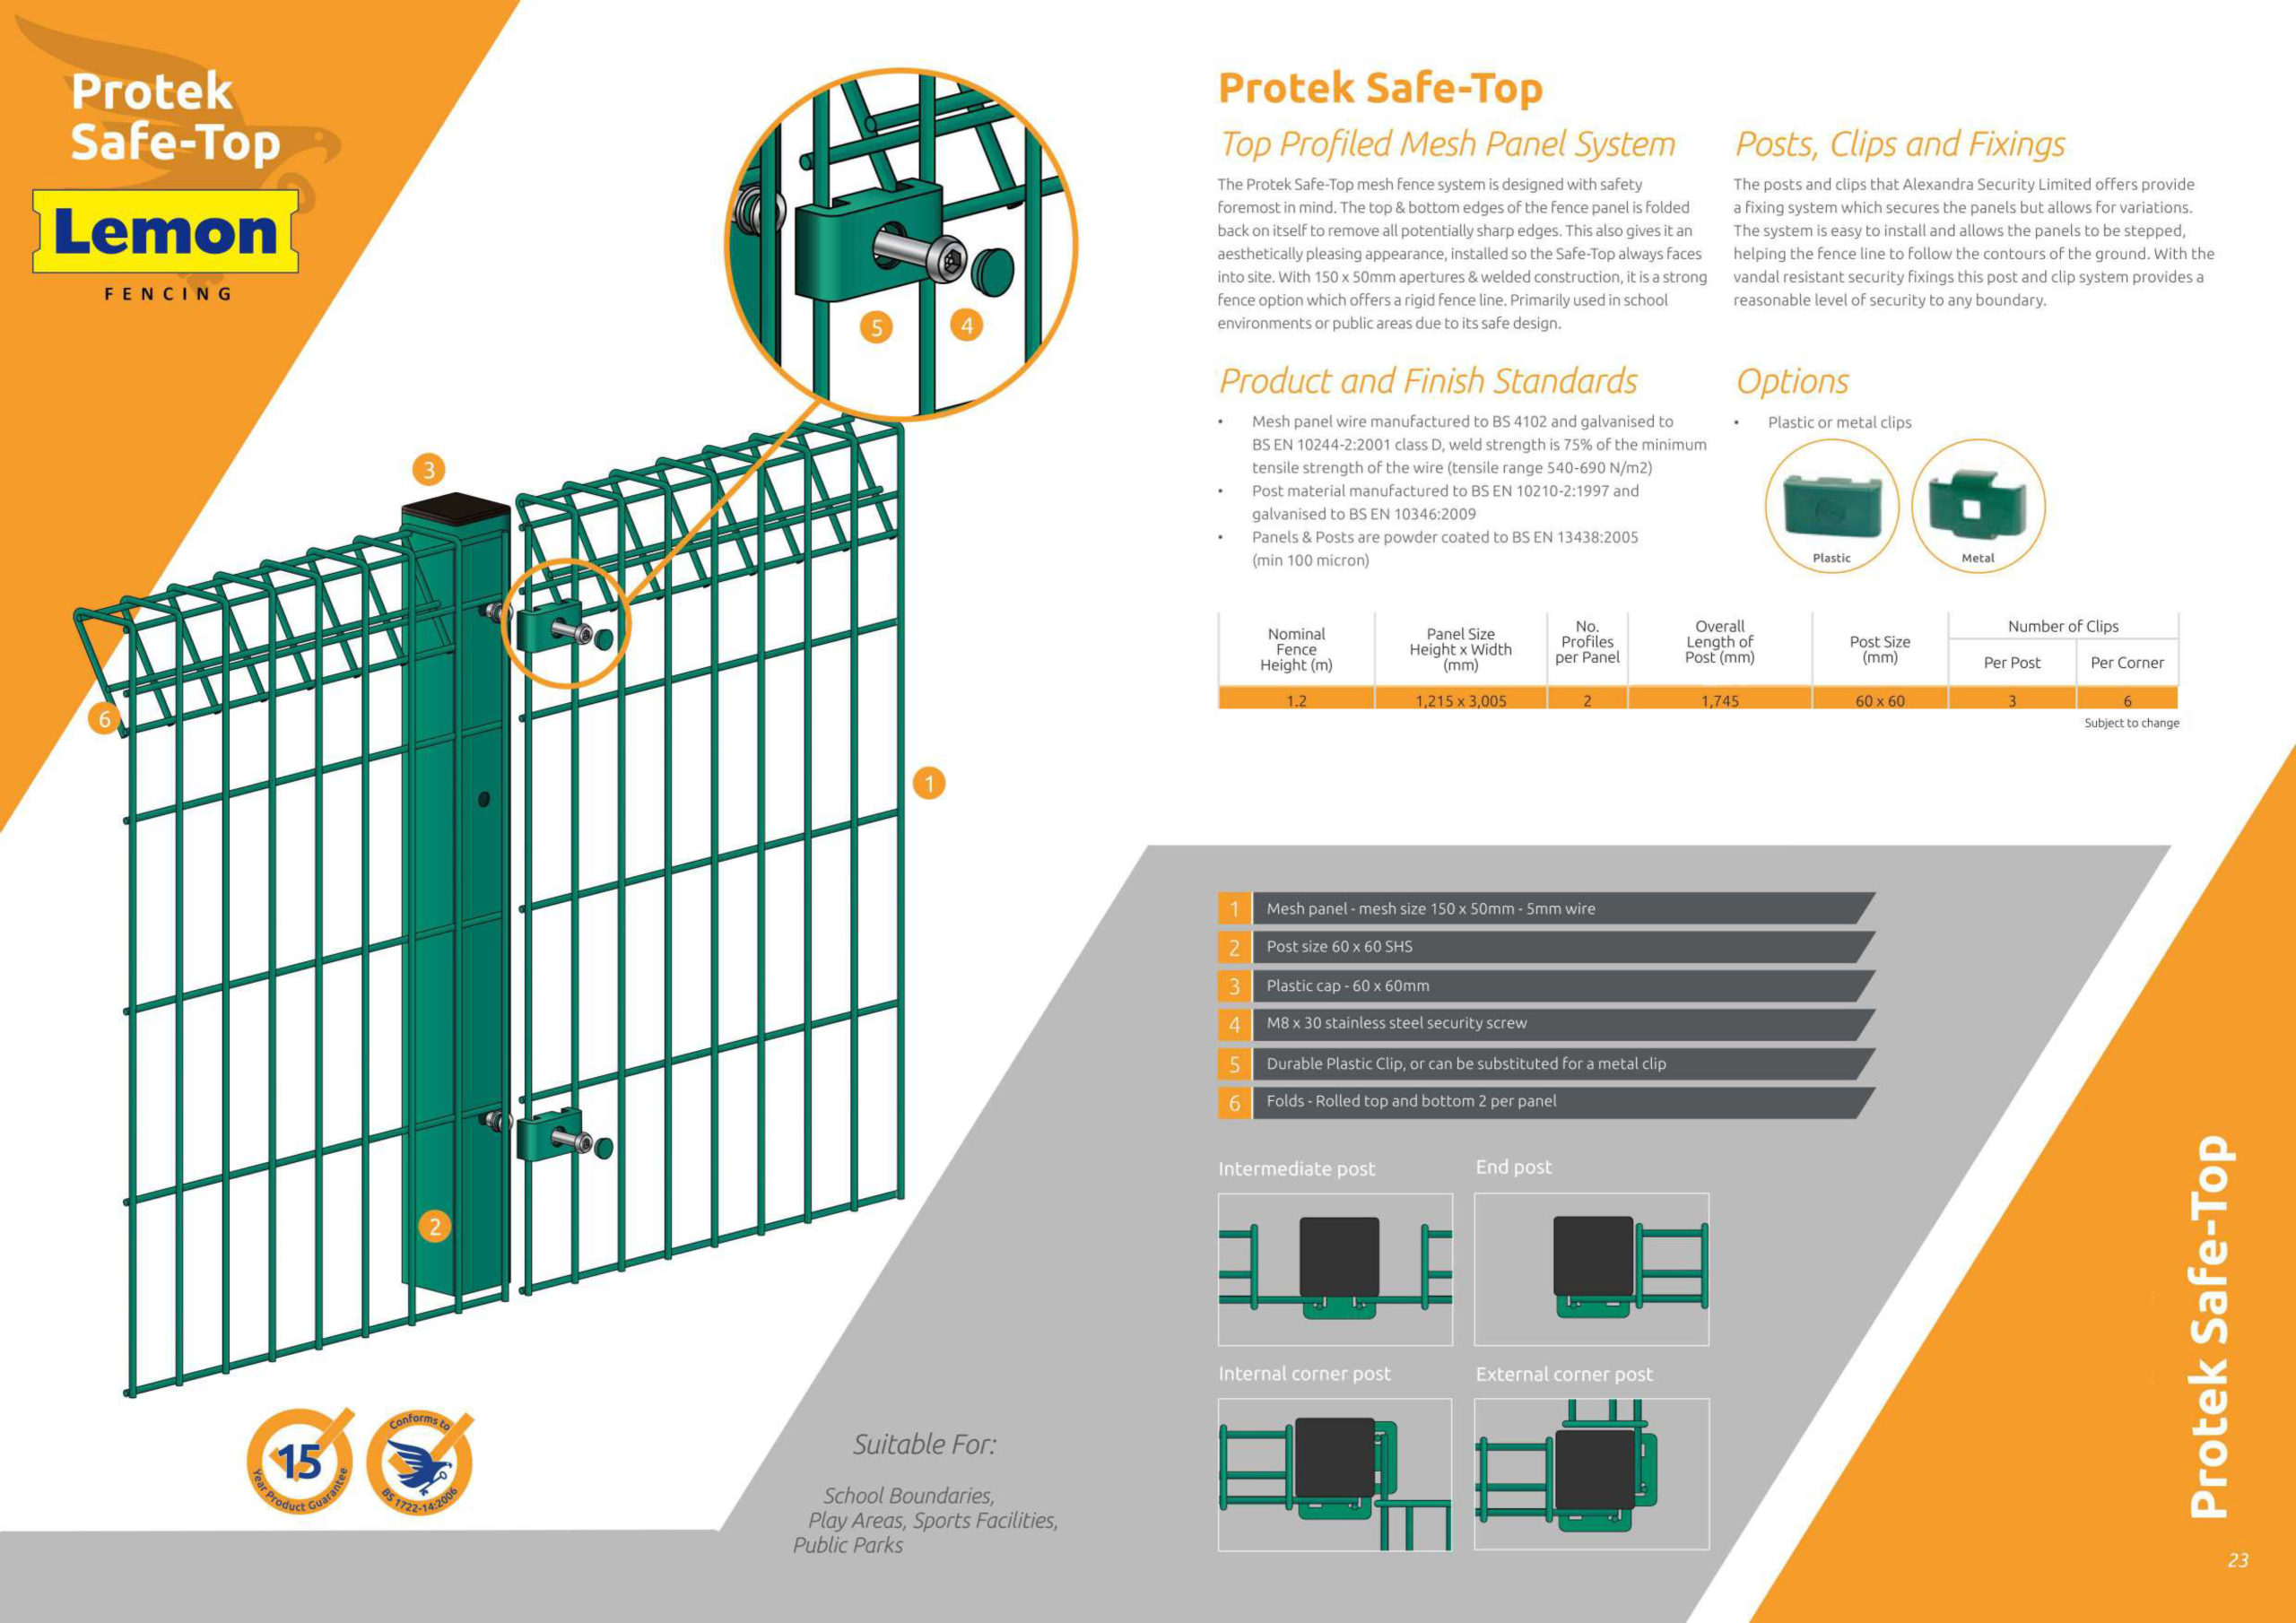 Lemon_fencing_Protek_Safe-top